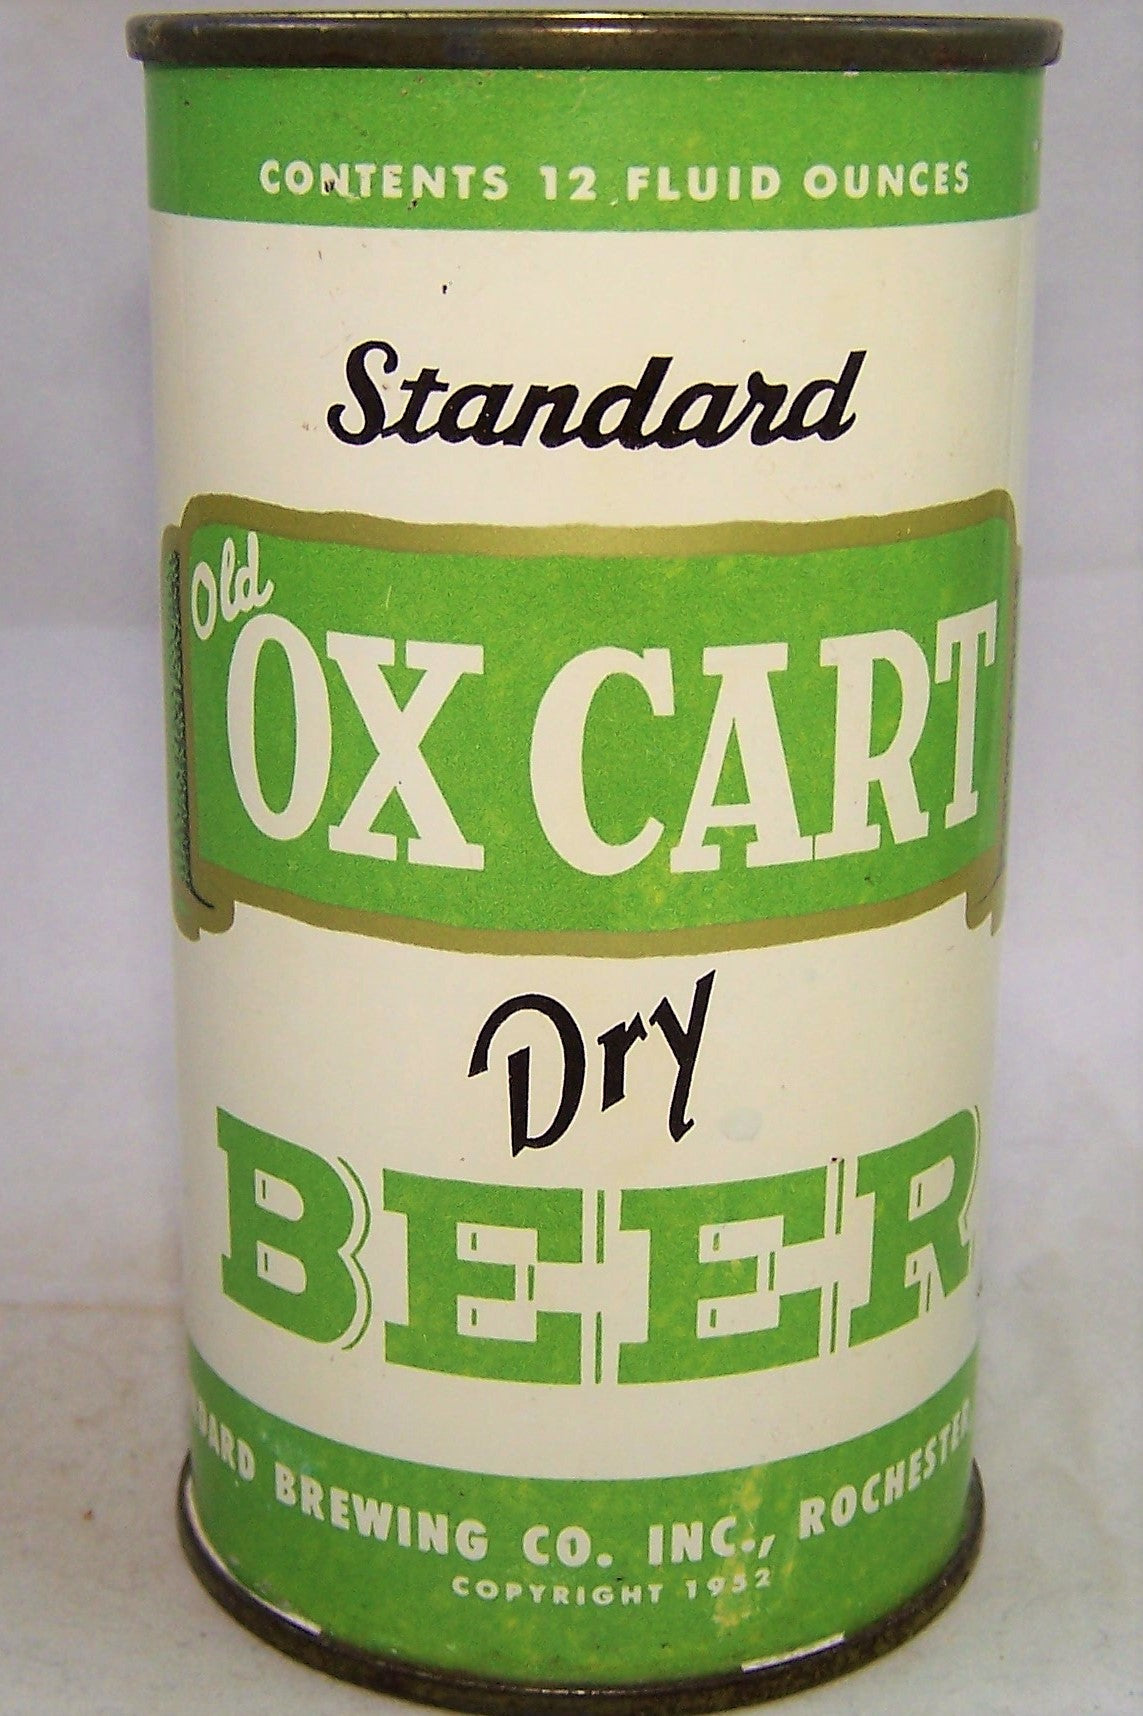 Standard Old Ox Cart Dry Beer, USBC 135-31, Grade 1/1- Sold on 04/25/18